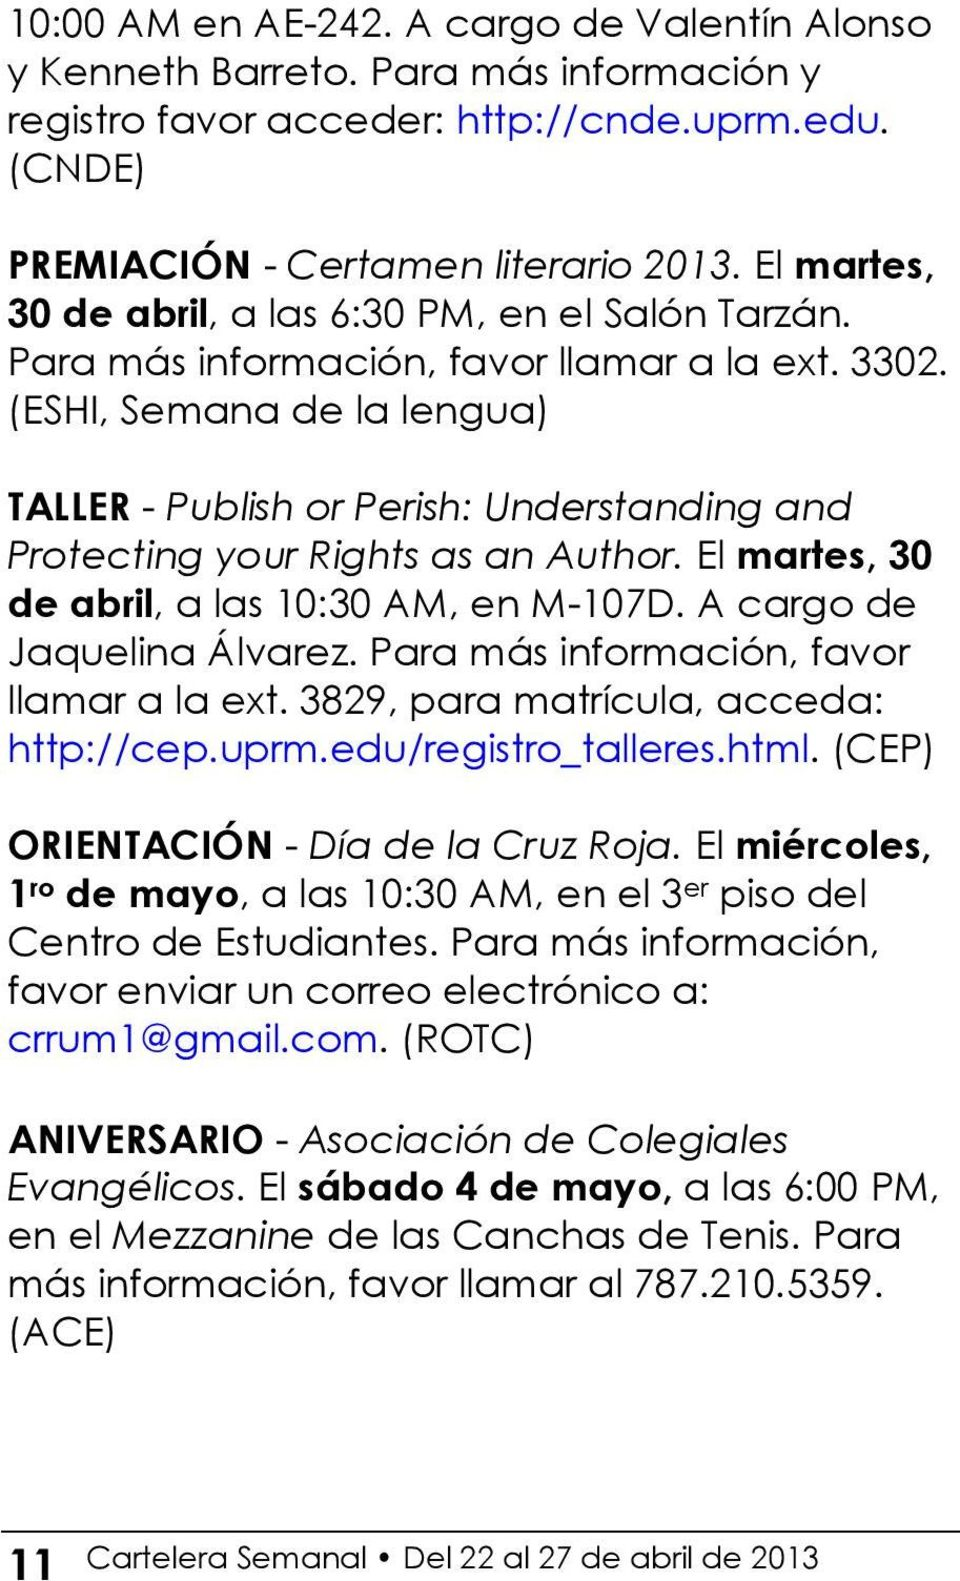 (ESHI, Semana de la lengua) TALLER - Publish or Perish: Understanding and Protecting your Rights as an Author. El martes, 30 de abril, a las 10:30 AM, en M-107D. A cargo de Jaquelina Álvarez.